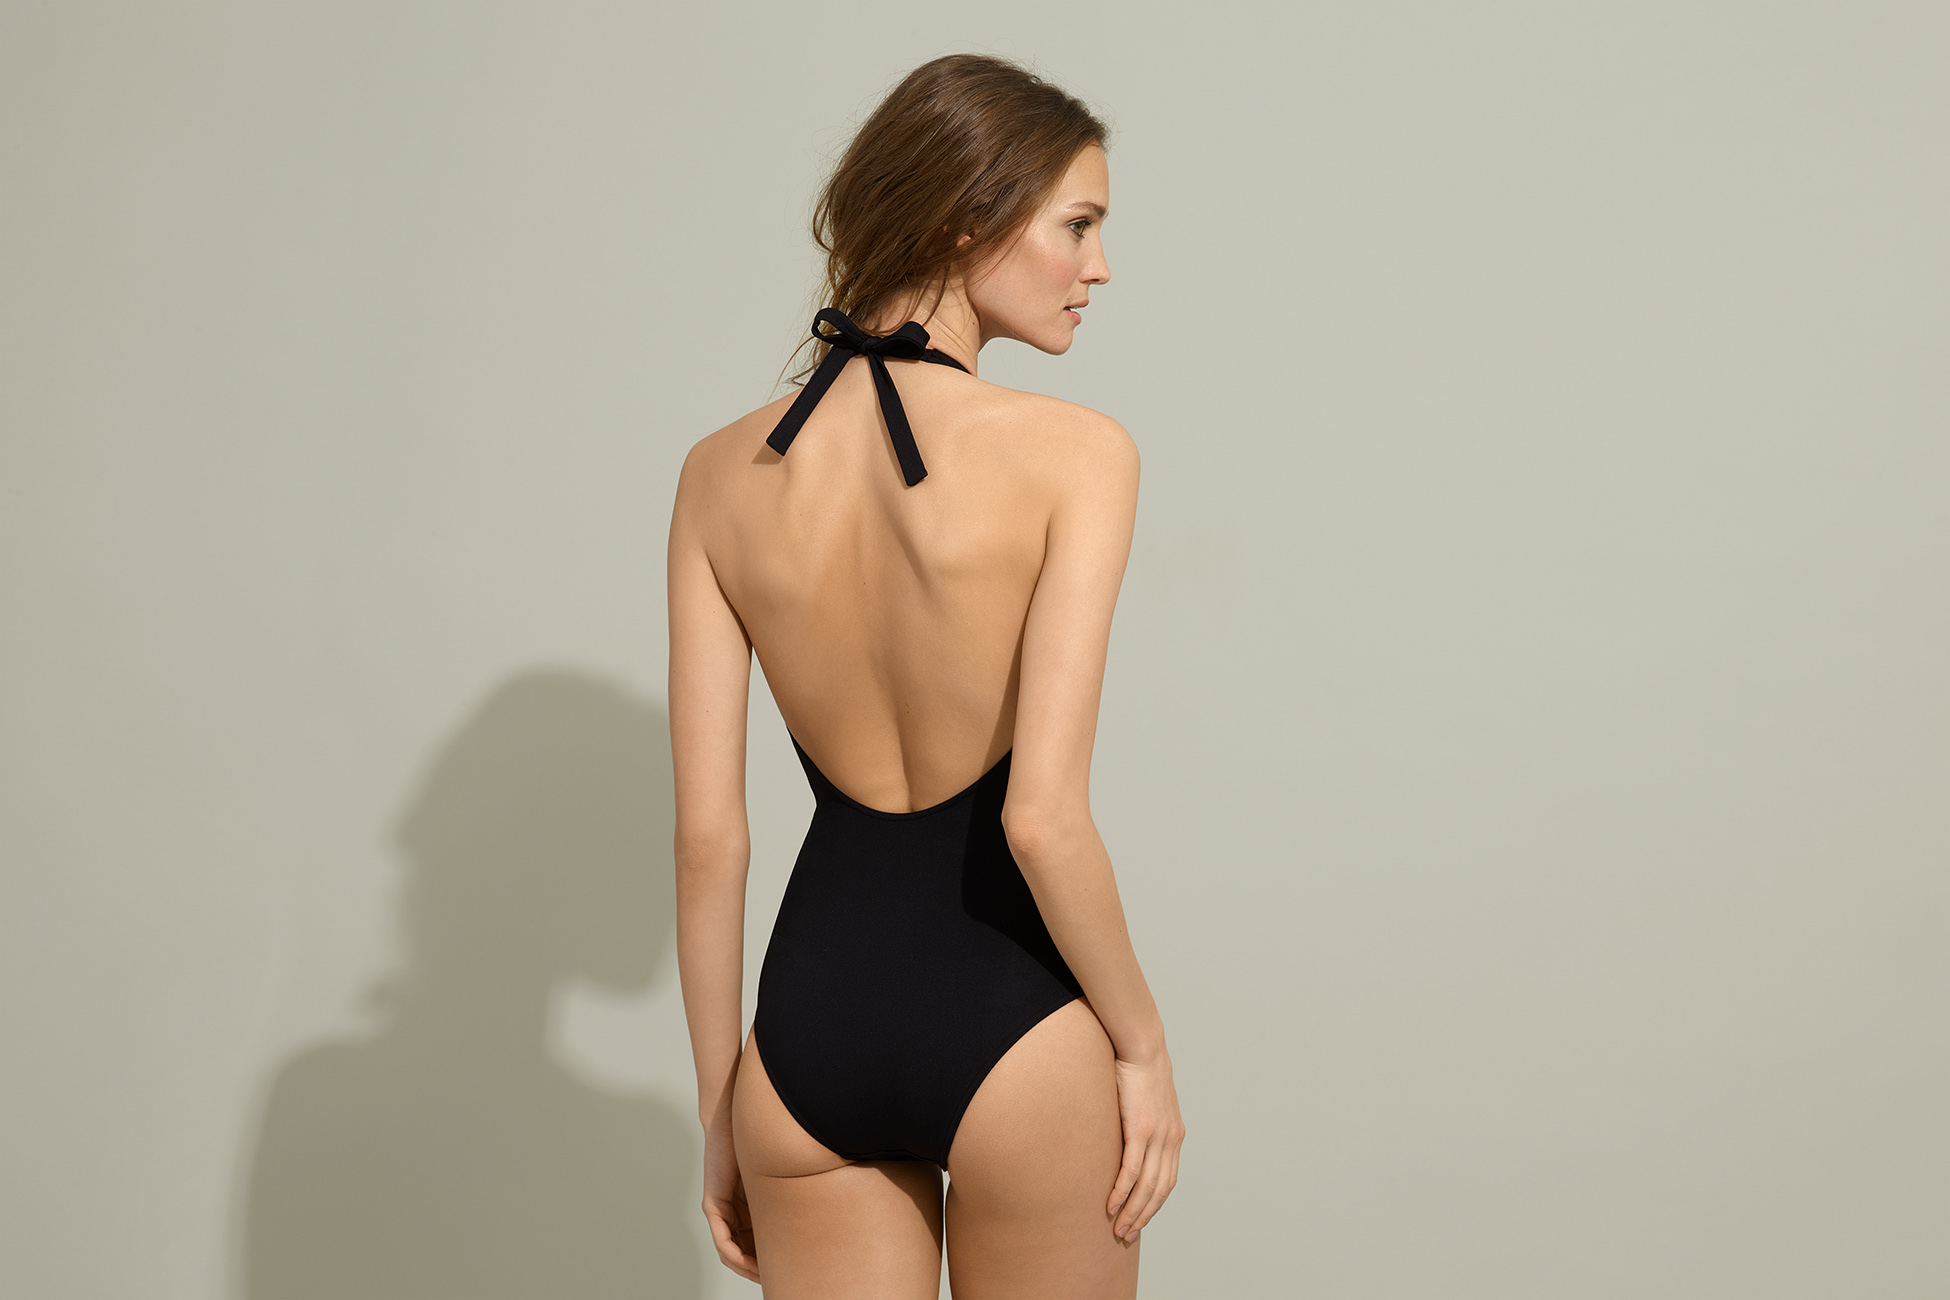 Cachette Sophisticated one-piece standard view 3